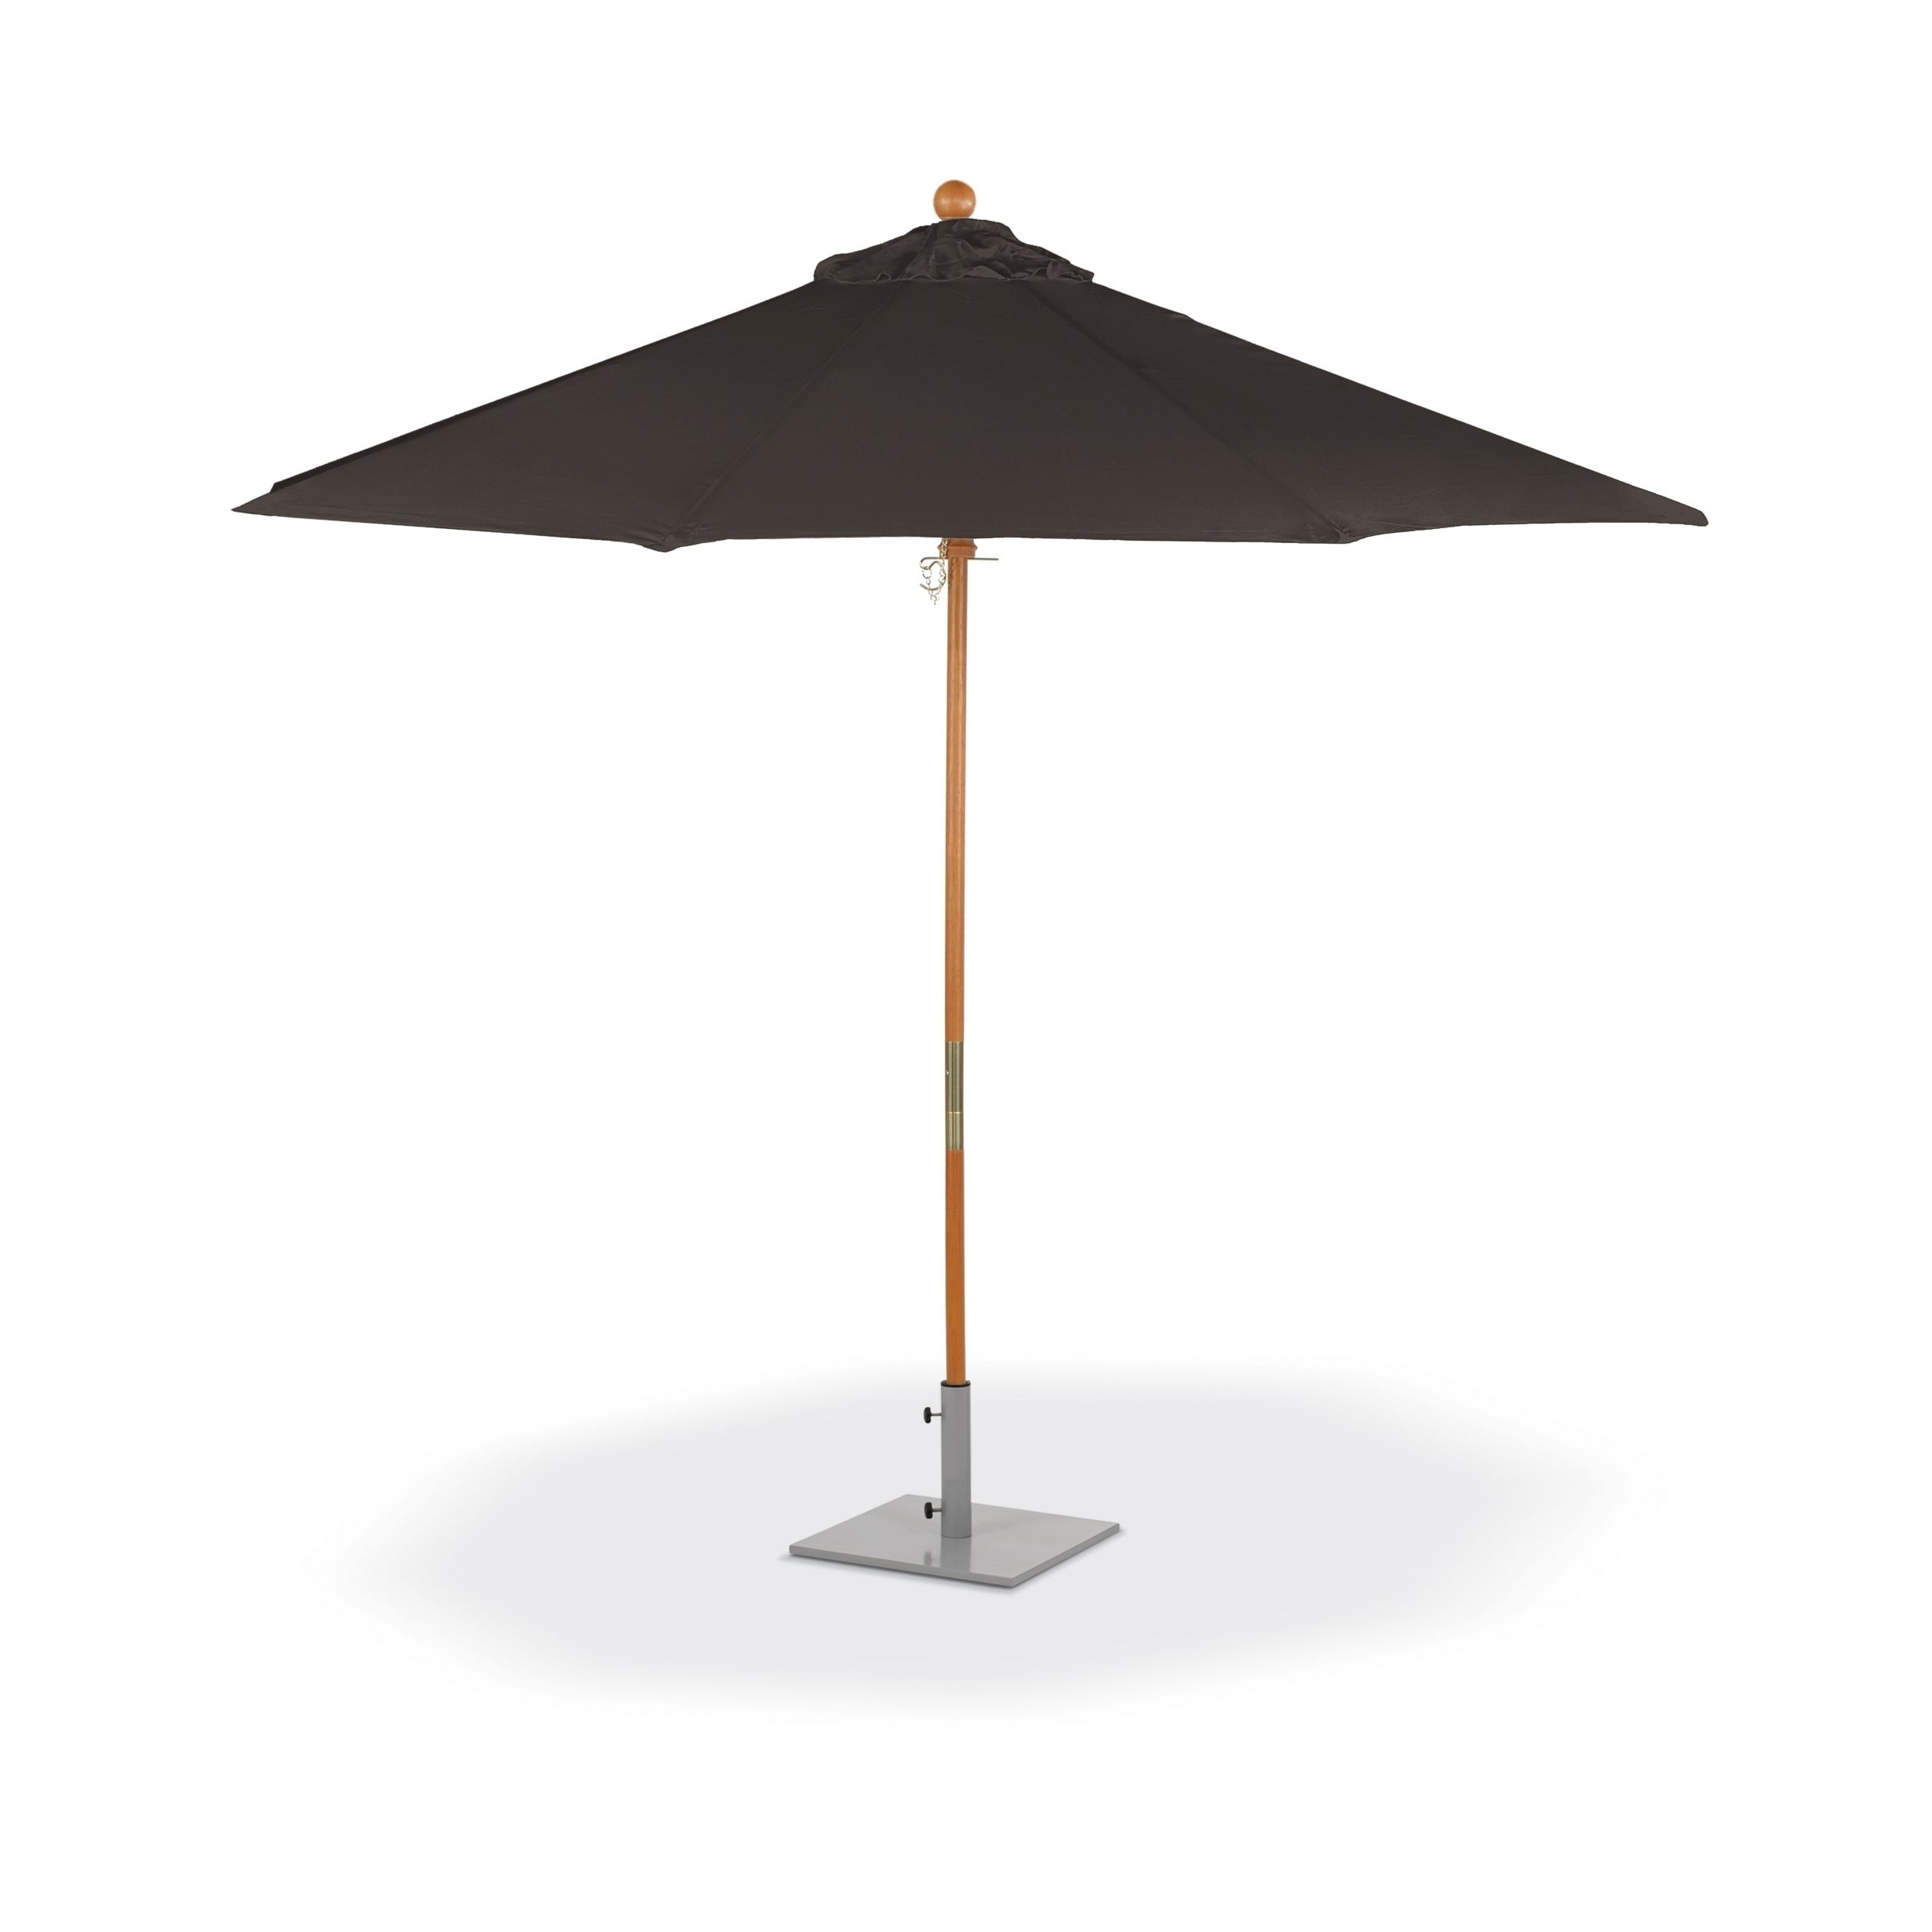 Oxford Garden 9 Feet Octagon Black Sunbrella Fabric Shade Market Umbrella  With Solid Tropical Hardwood Frame Pertaining To Most Up To Date Solid Market Umbrellas (View 12 of 20)